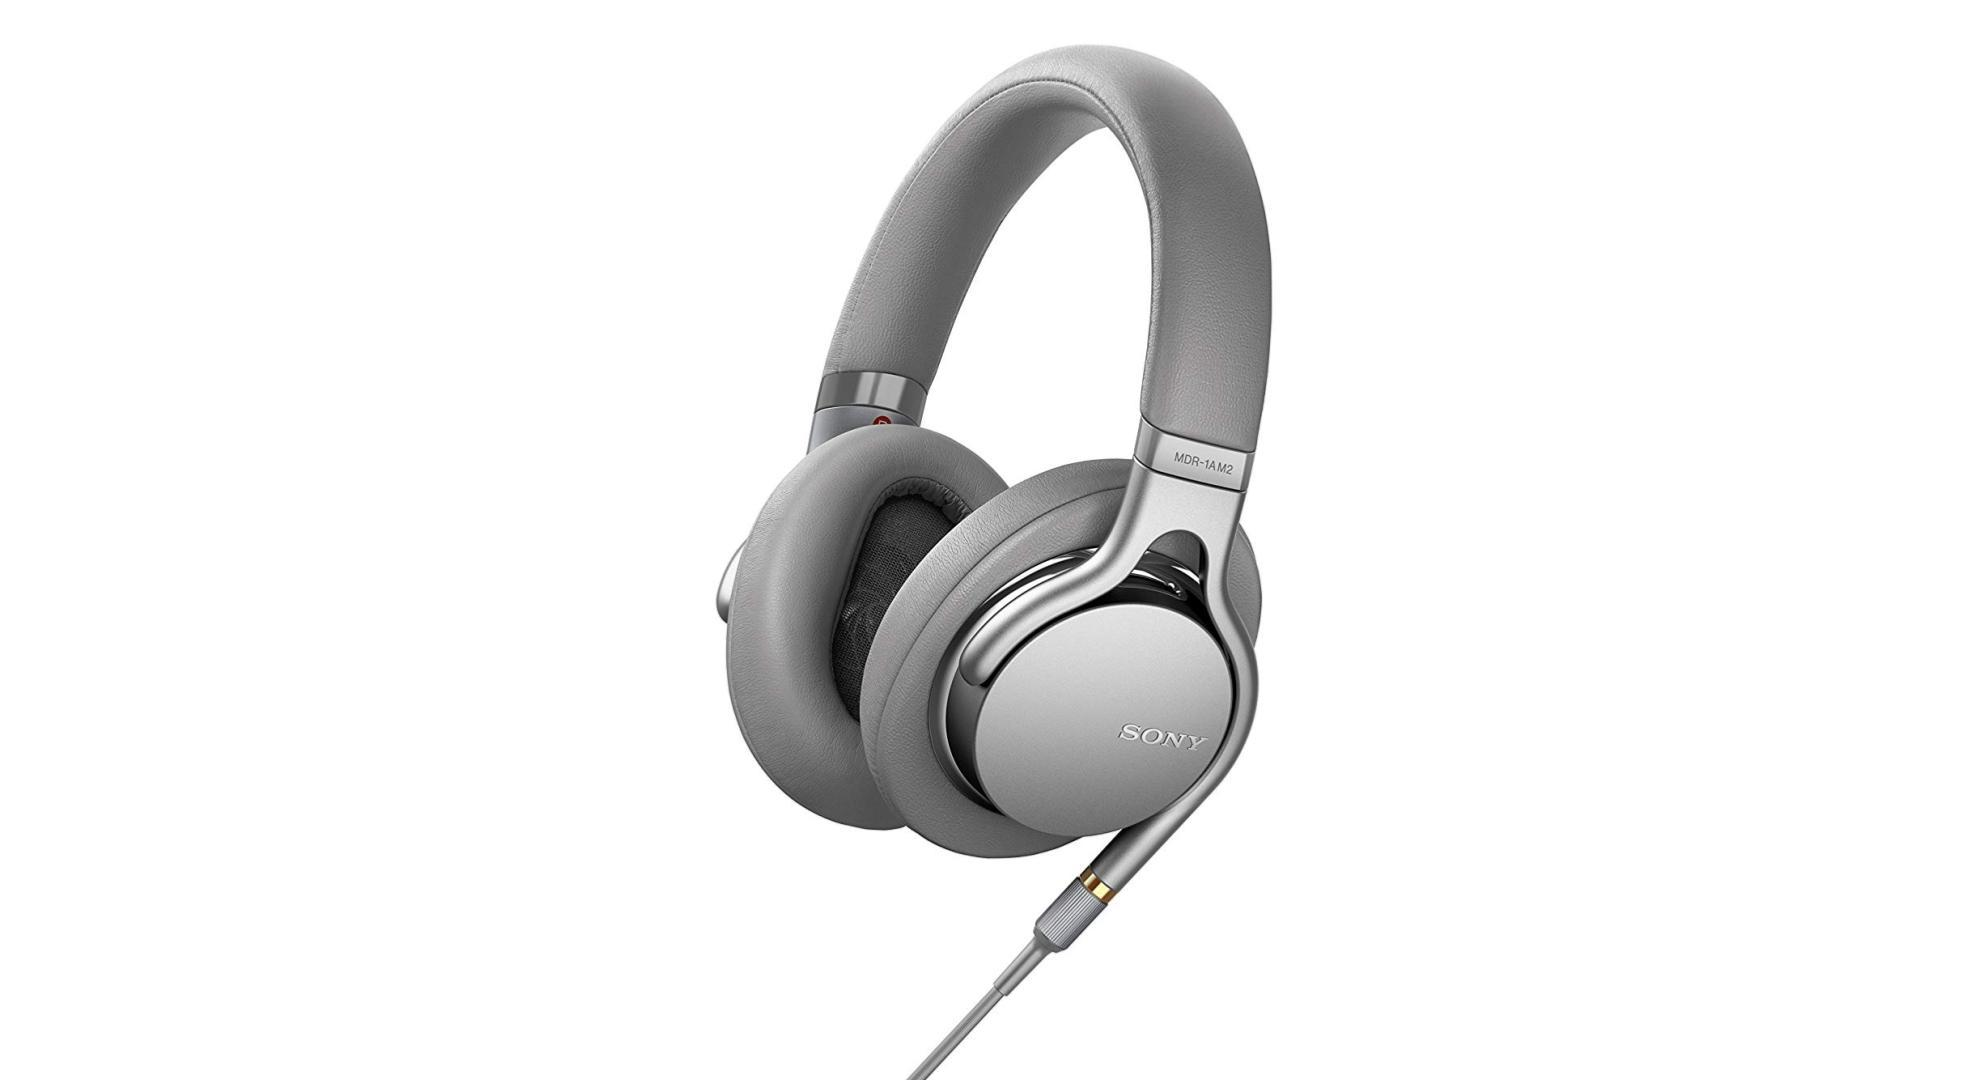 🔥 Bon plan : le casque Sony MDR-1AM2 (Hi-Res) descend à 119 euros